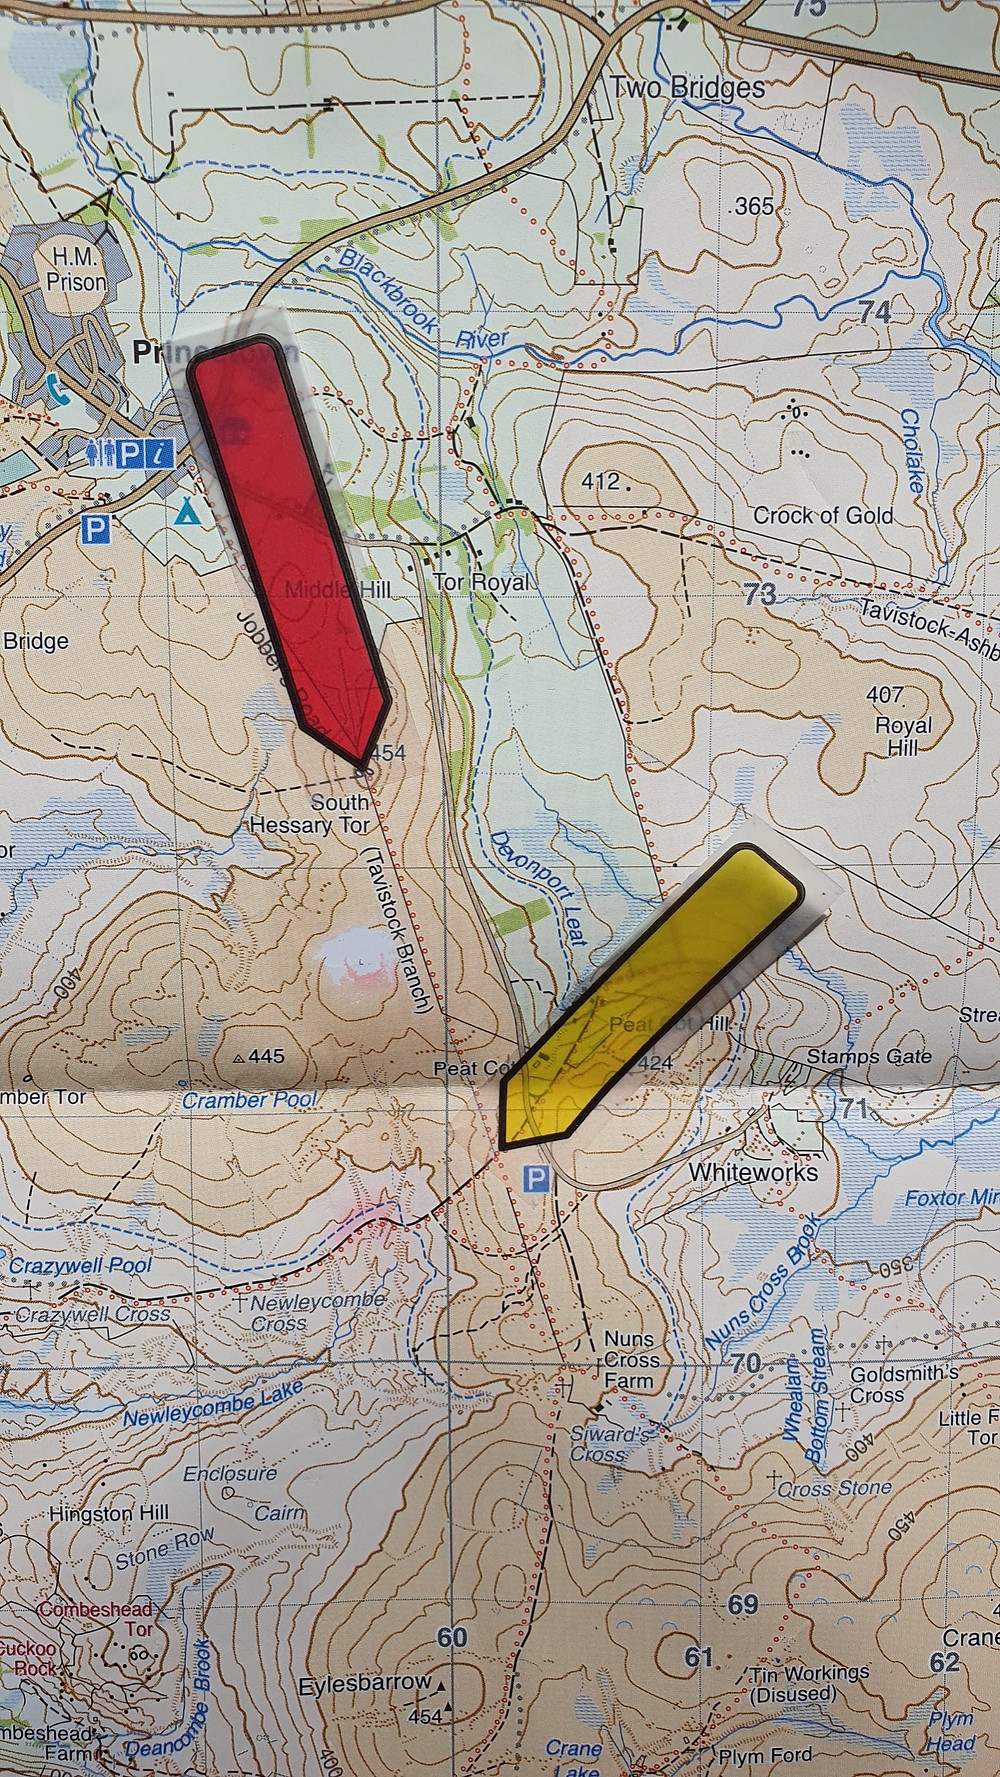 Pointers showing location on a Harvey's Map